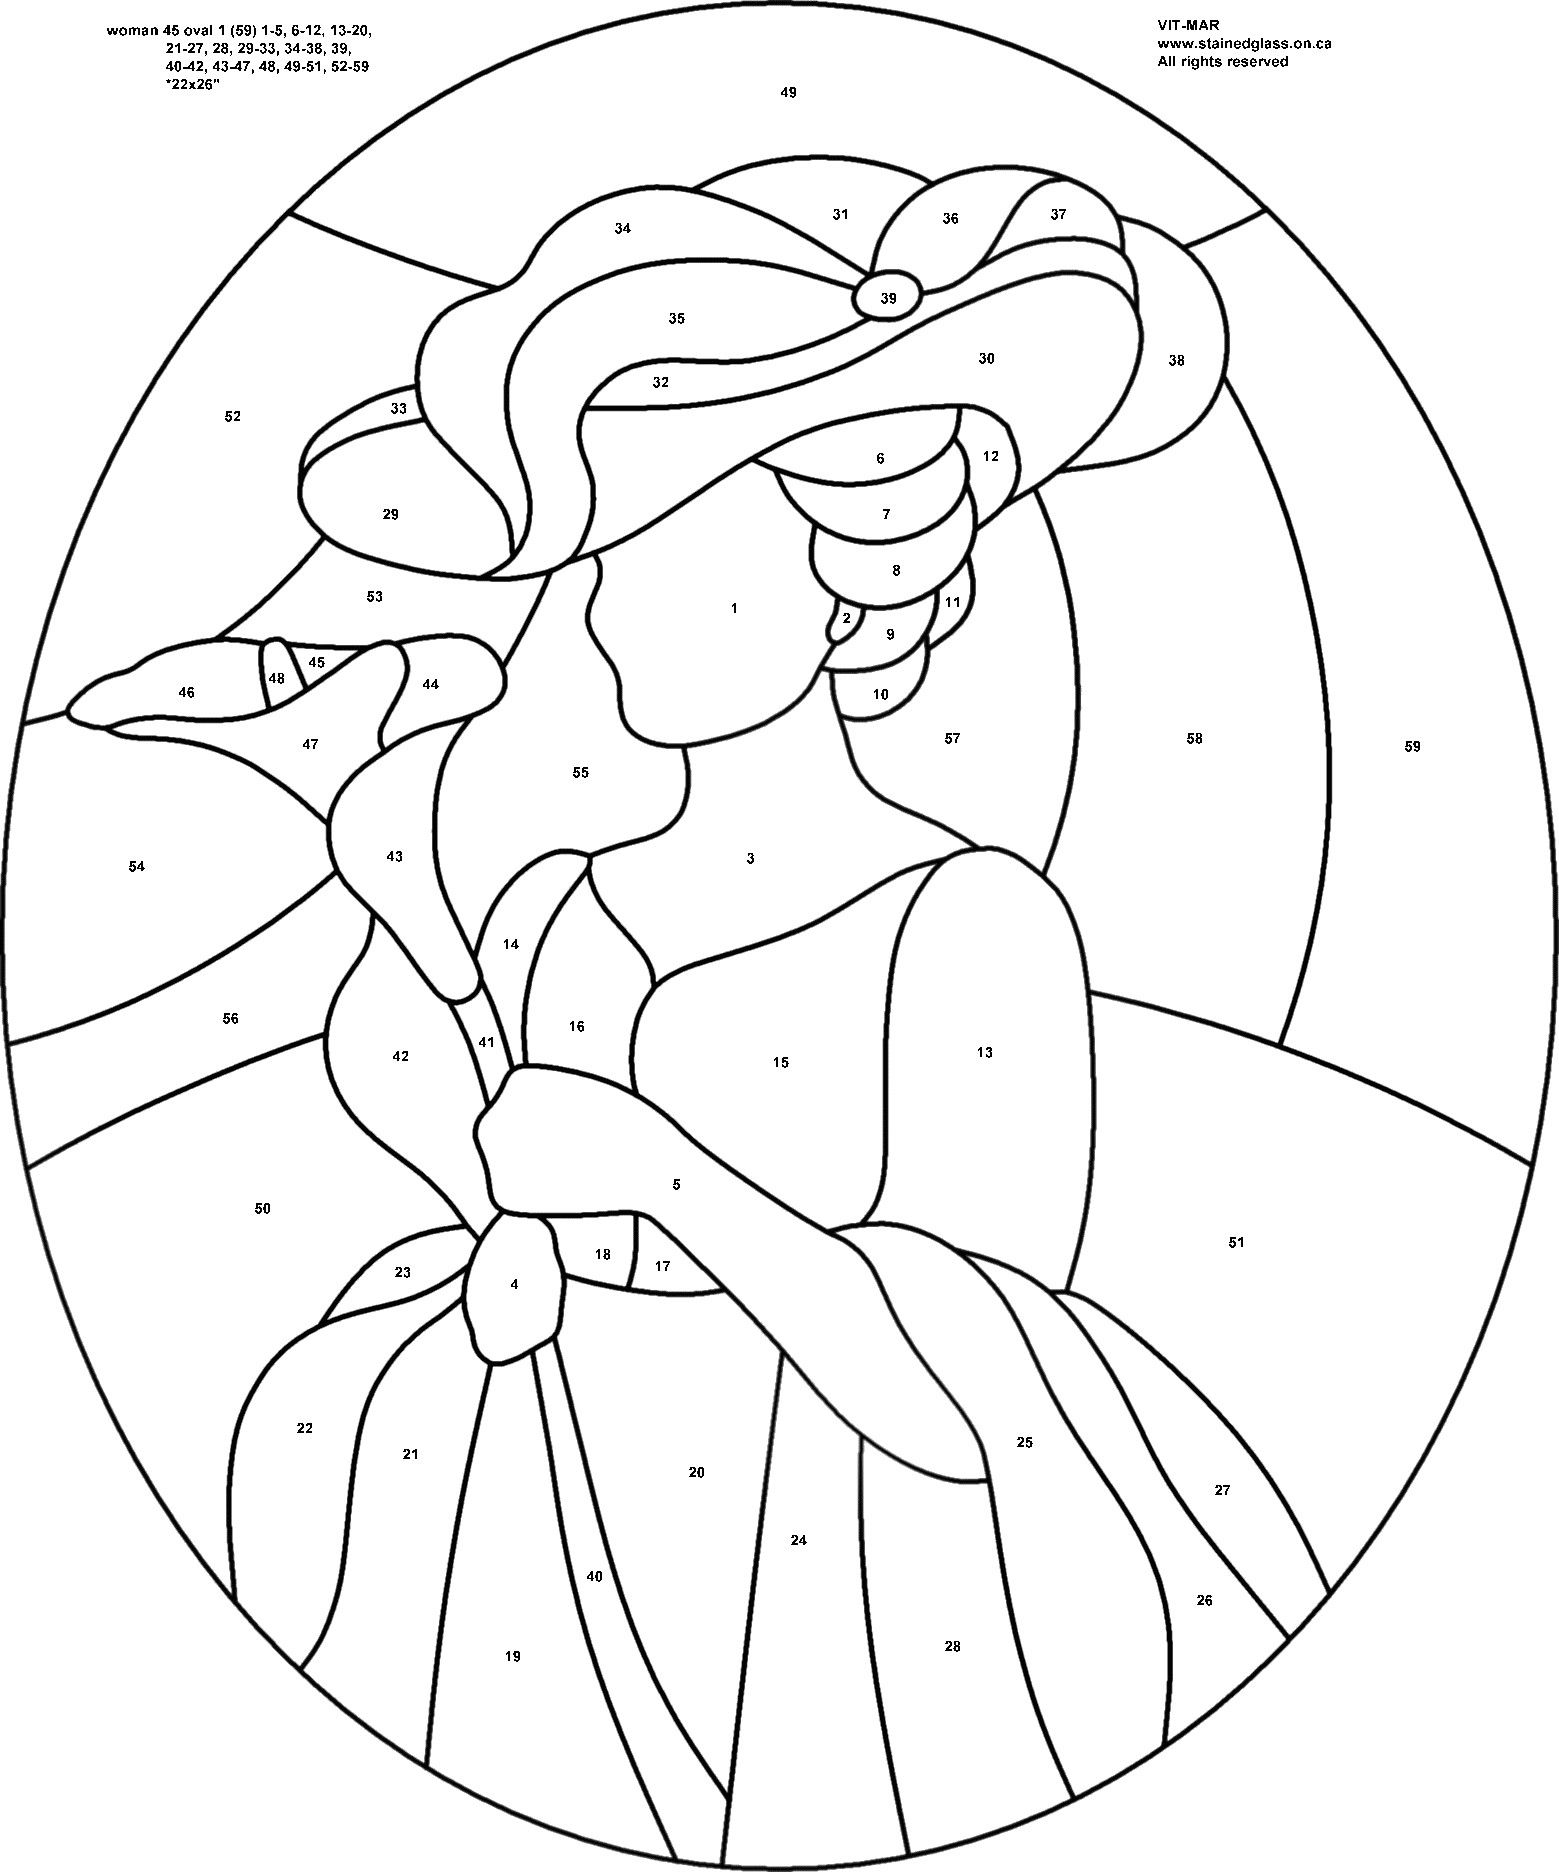 free stained glass pattern red hat lady patterns pinterest vitrail peinture vitrail et. Black Bedroom Furniture Sets. Home Design Ideas